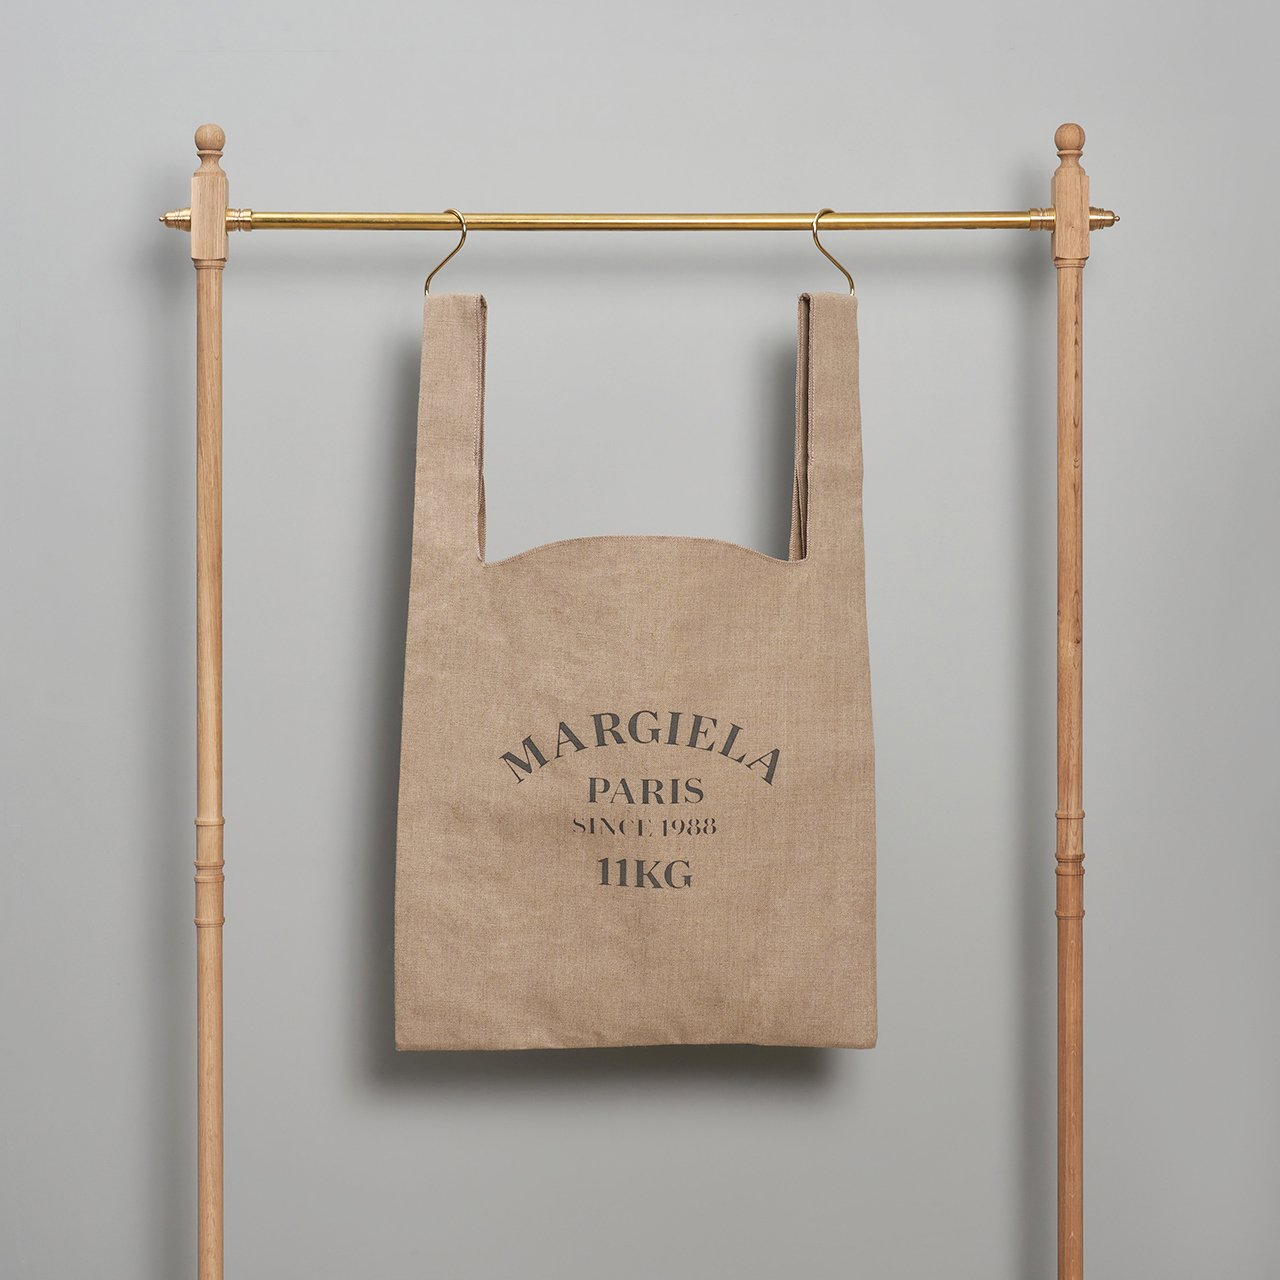 Maison Margiela PARIS <BR>linen shopping bag<BR>XL size